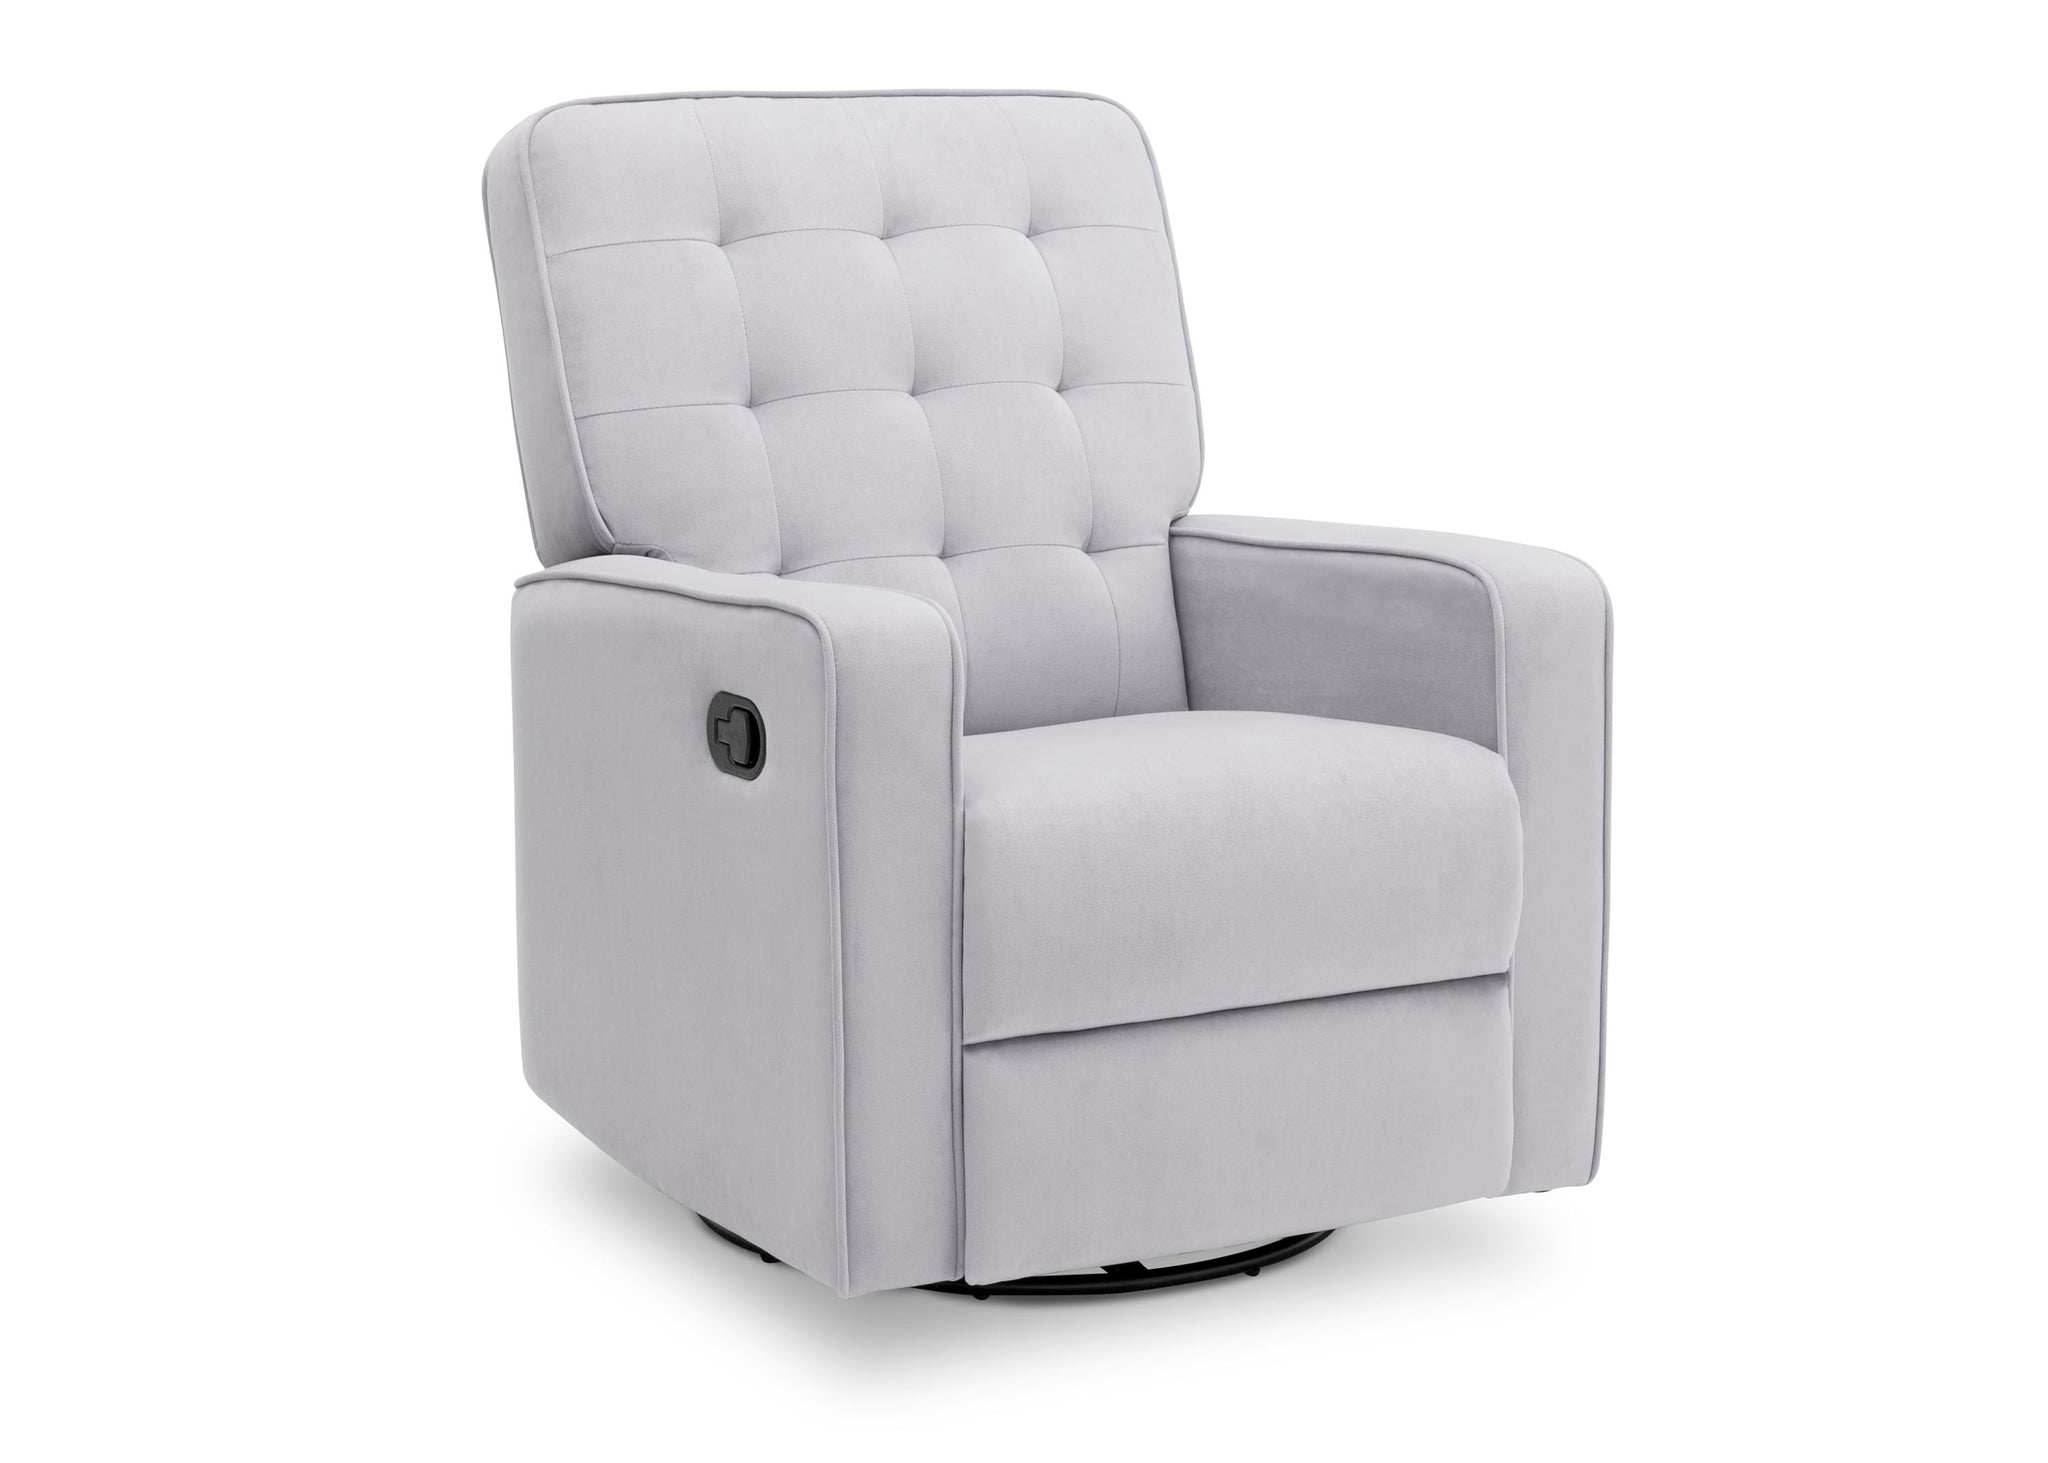 Delta Children Linen (150) Graham Nursery Glider Swivel Recliner, Right Silo View